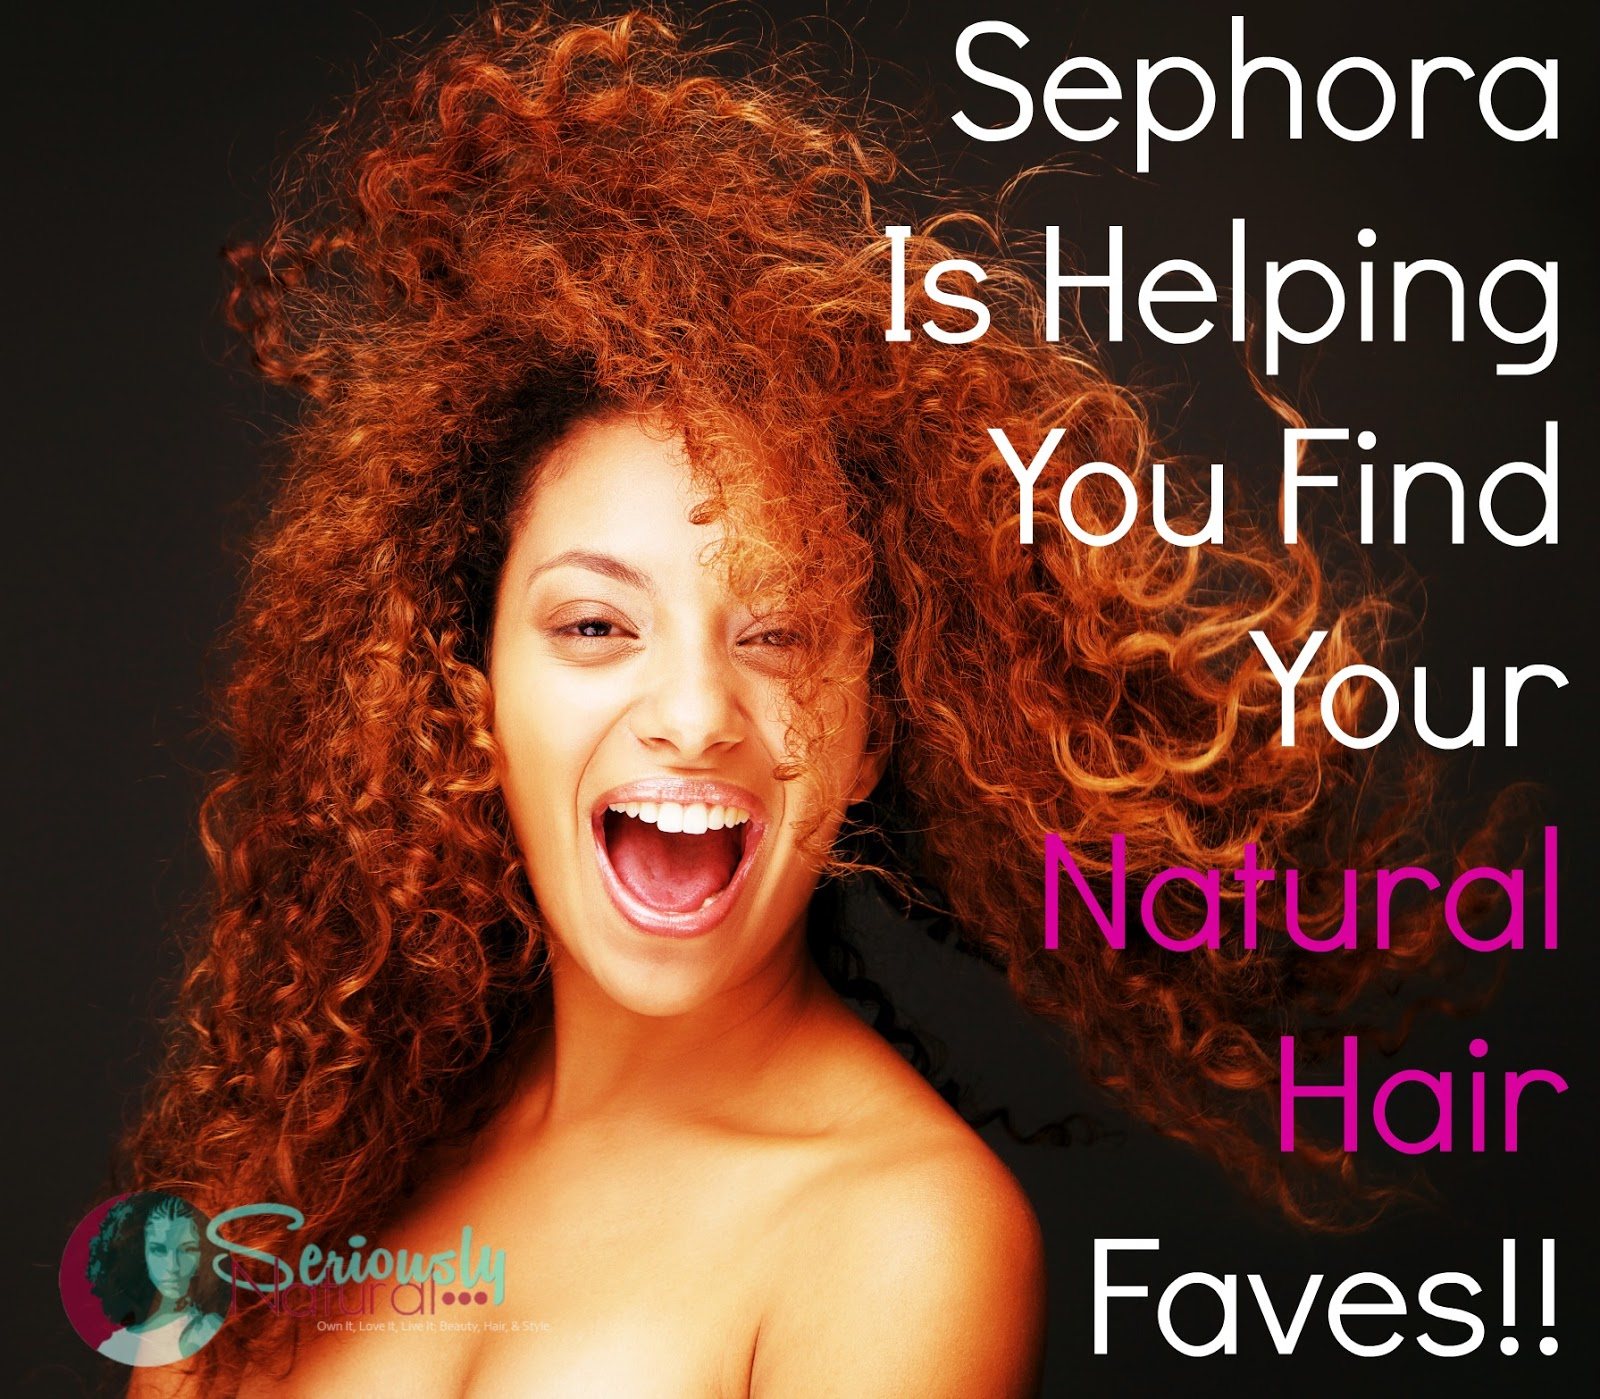 Sephora Is Helping You Find Your Natural Hair Faves!!